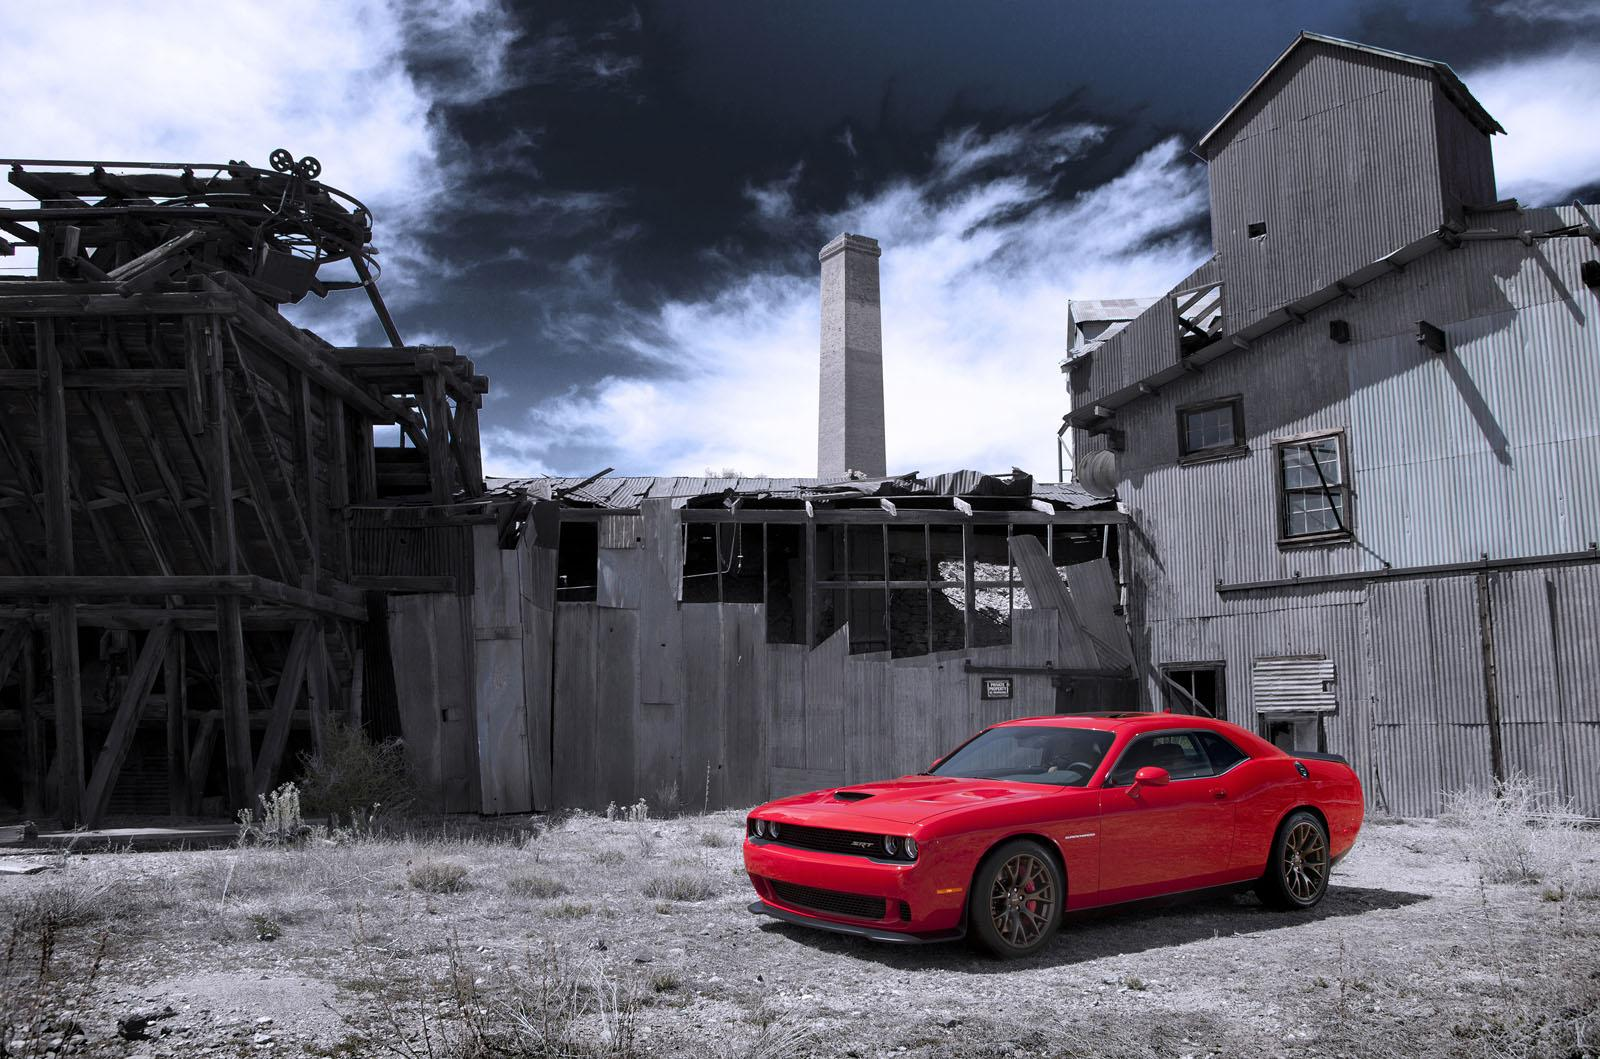 2015-Dodge-Challenger-SRT-Hellcat-red